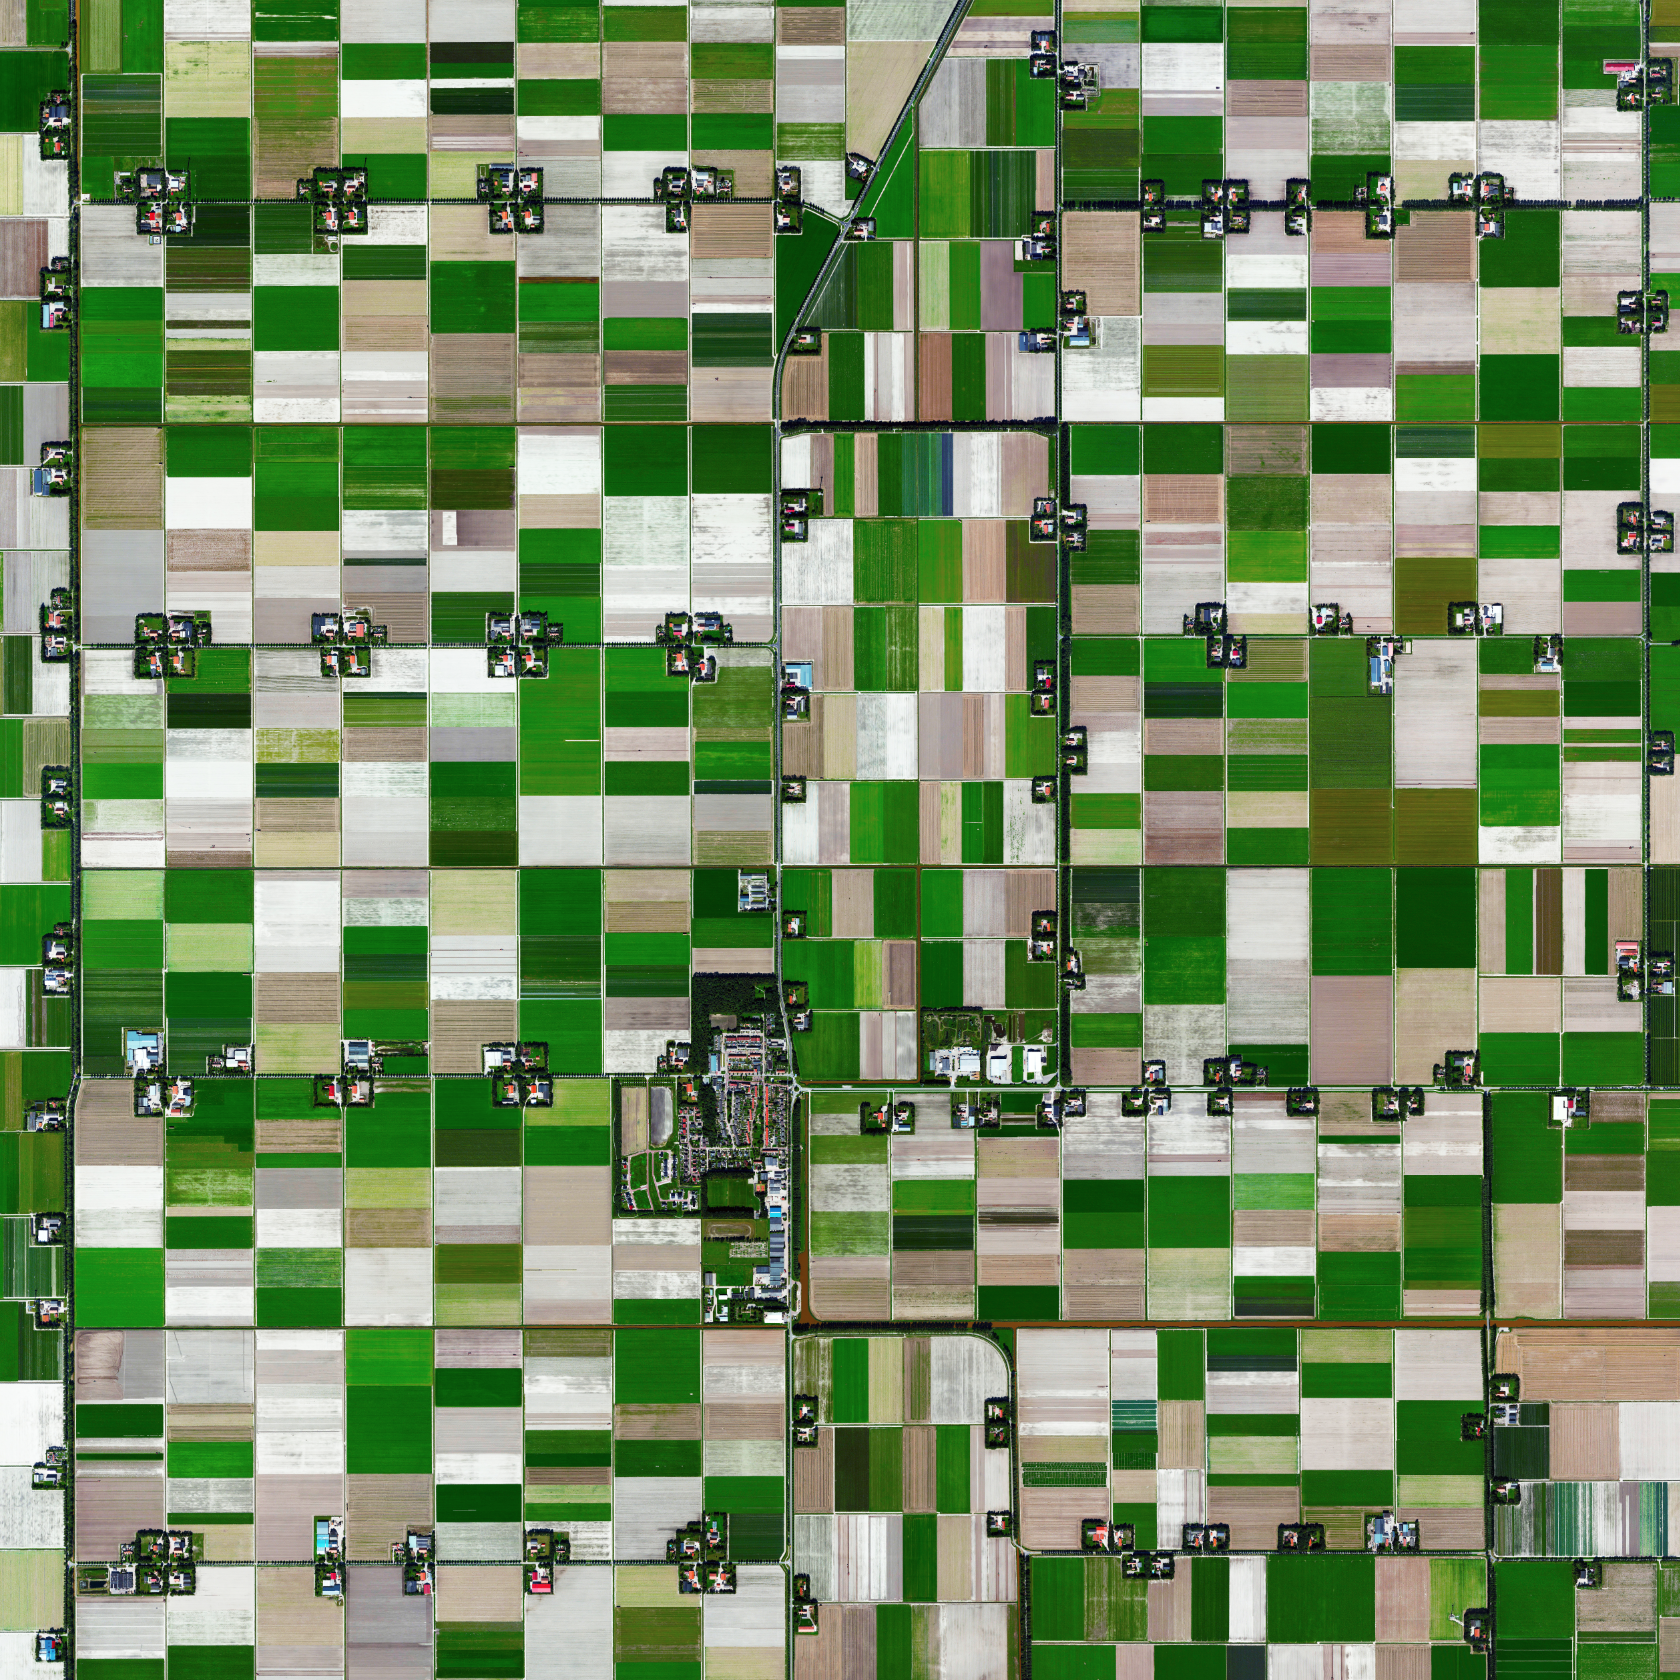 12/20/2015   Espel   Espel, Netherlands  52°43′27″N 5°38′39″E    The village of Espel - located in the province of Flevoland, Netherlands - is home to 774 inhabitants. The farms in the region specialize in the growth of flower bulbs.